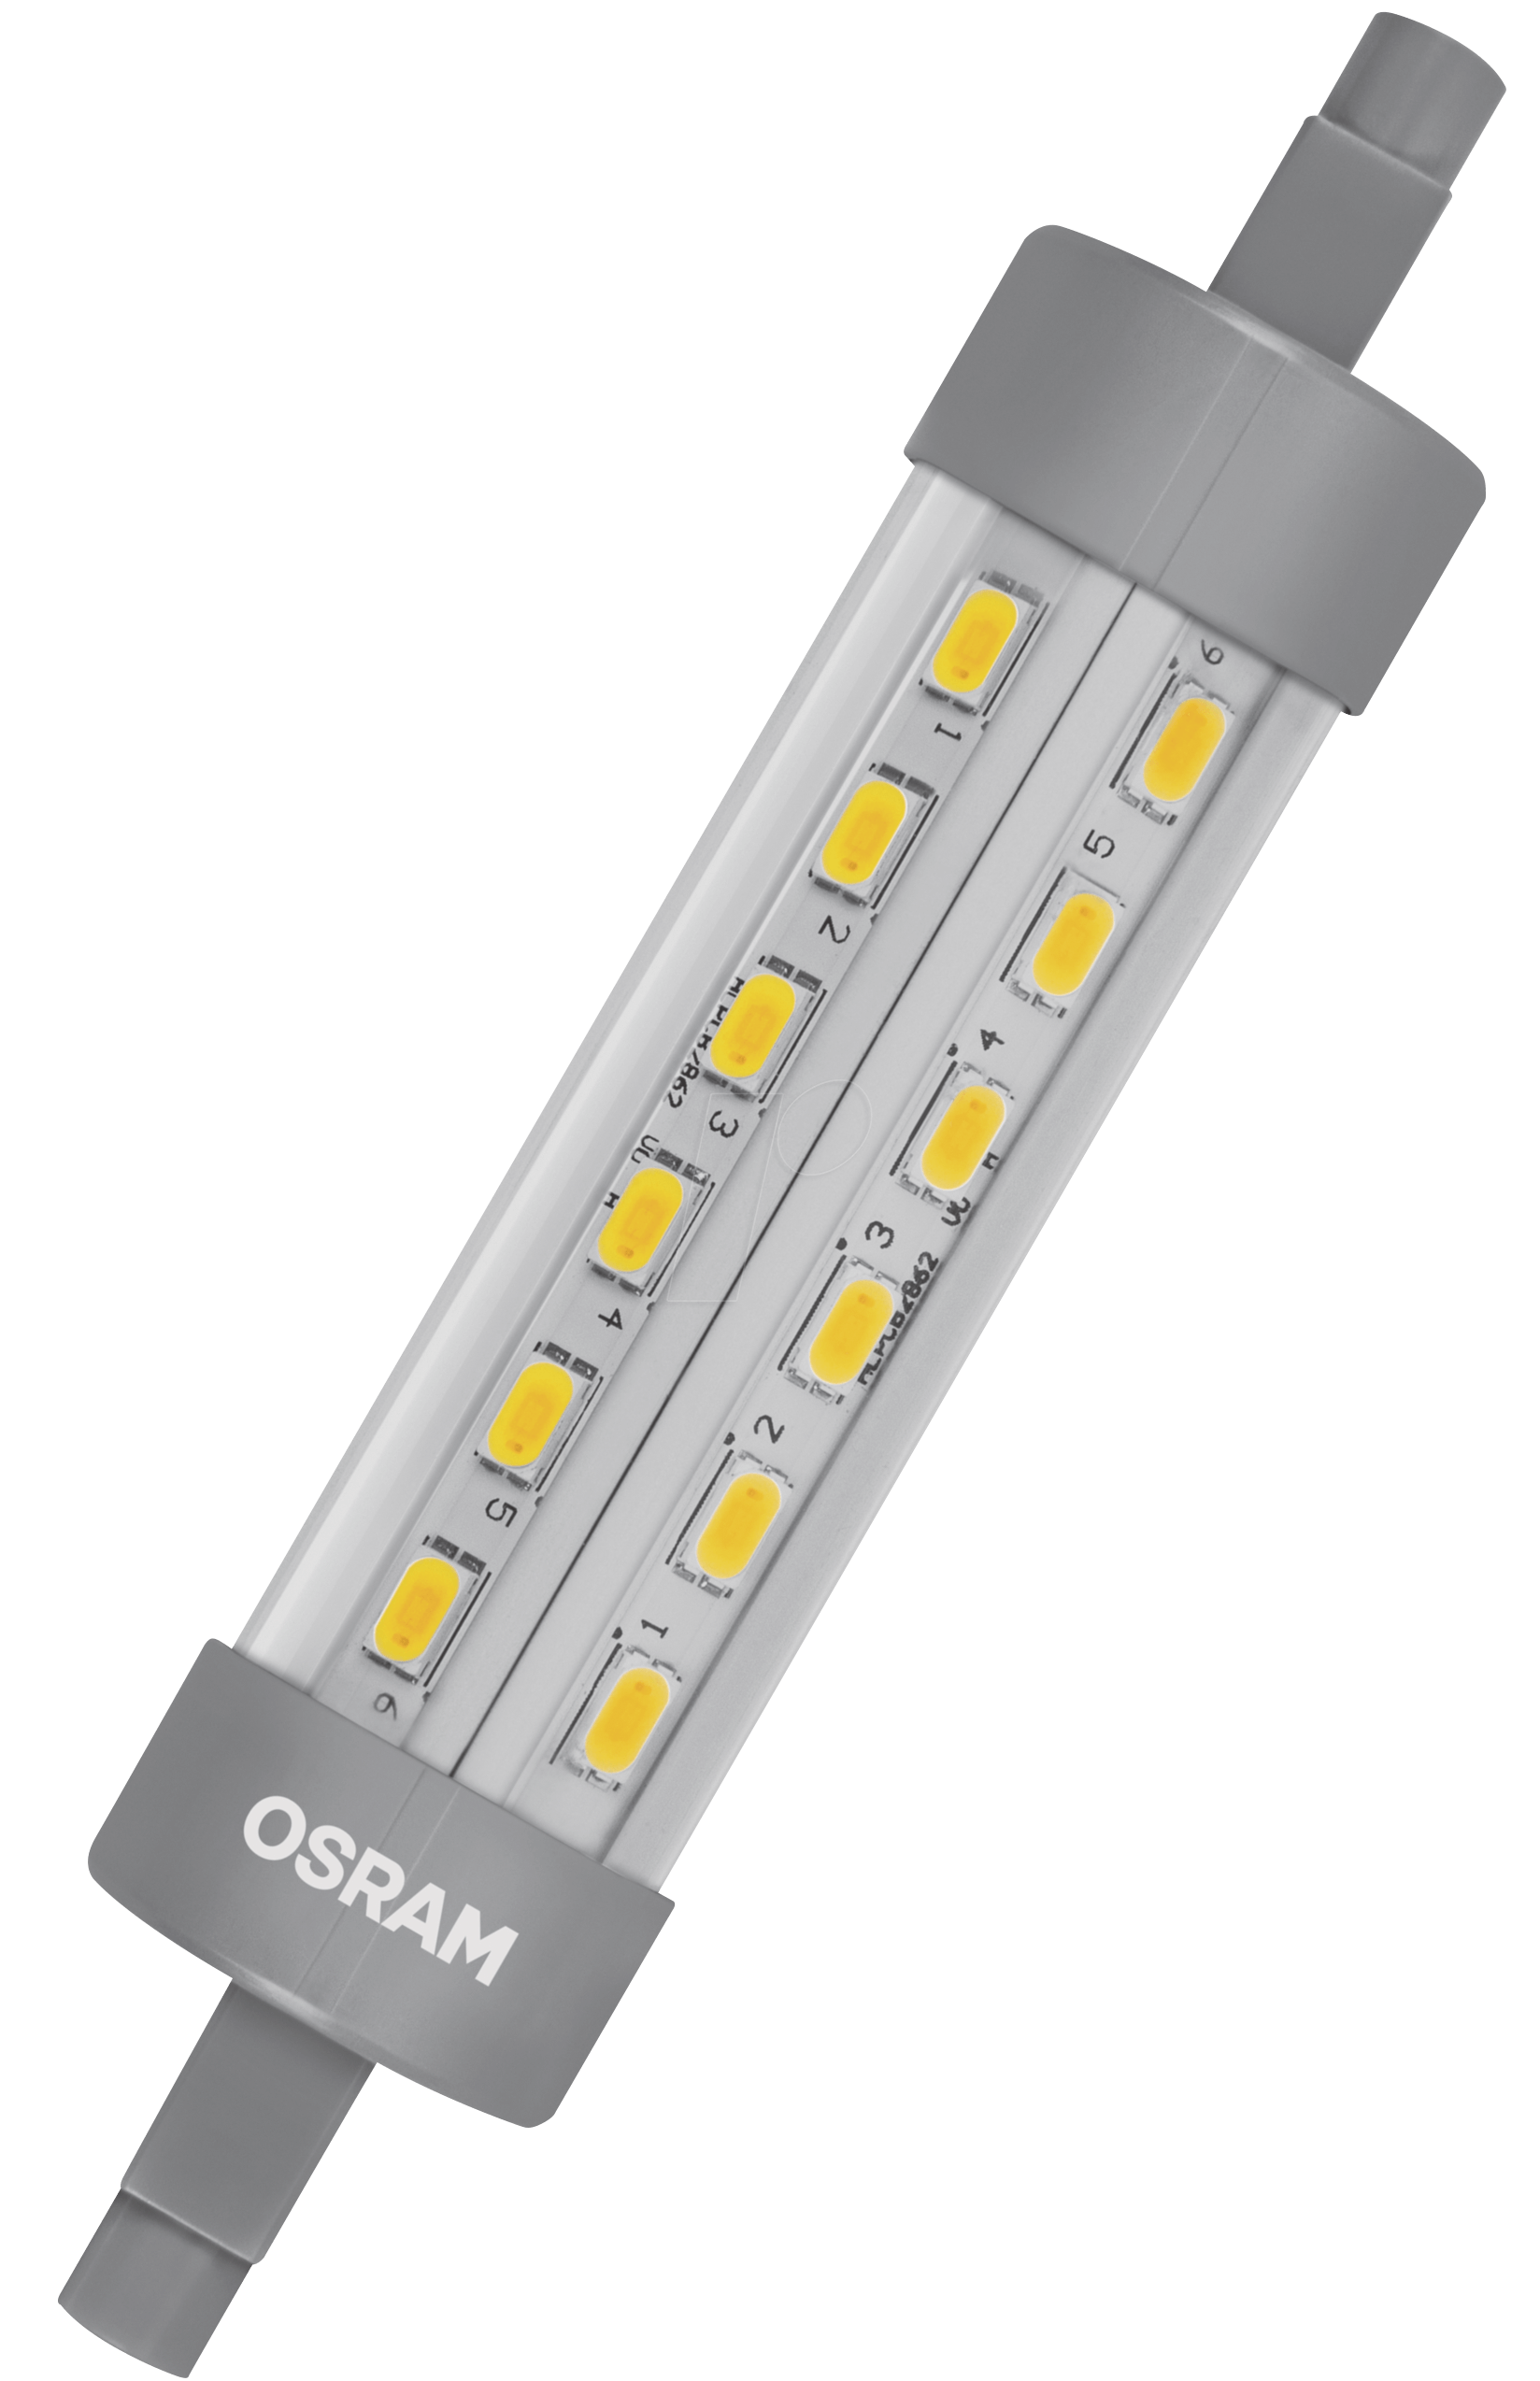 osram led superstar special line mit r7s sockel dimmbar. Black Bedroom Furniture Sets. Home Design Ideas